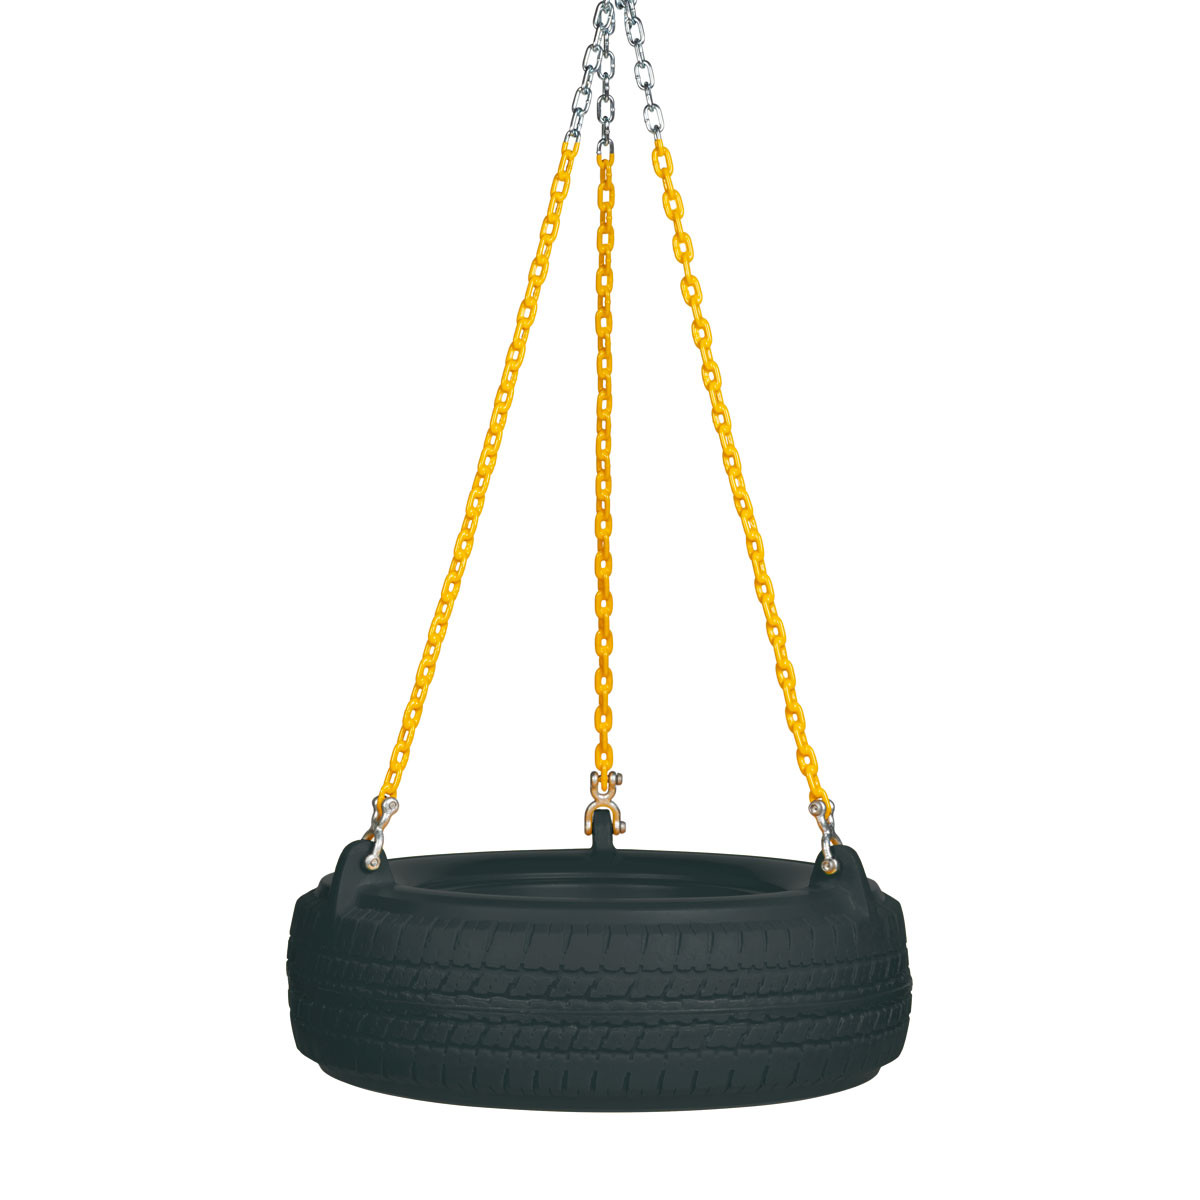 "Plastic Tire Swing with 5'6"" Plastisol Chain - Black/Yellow"